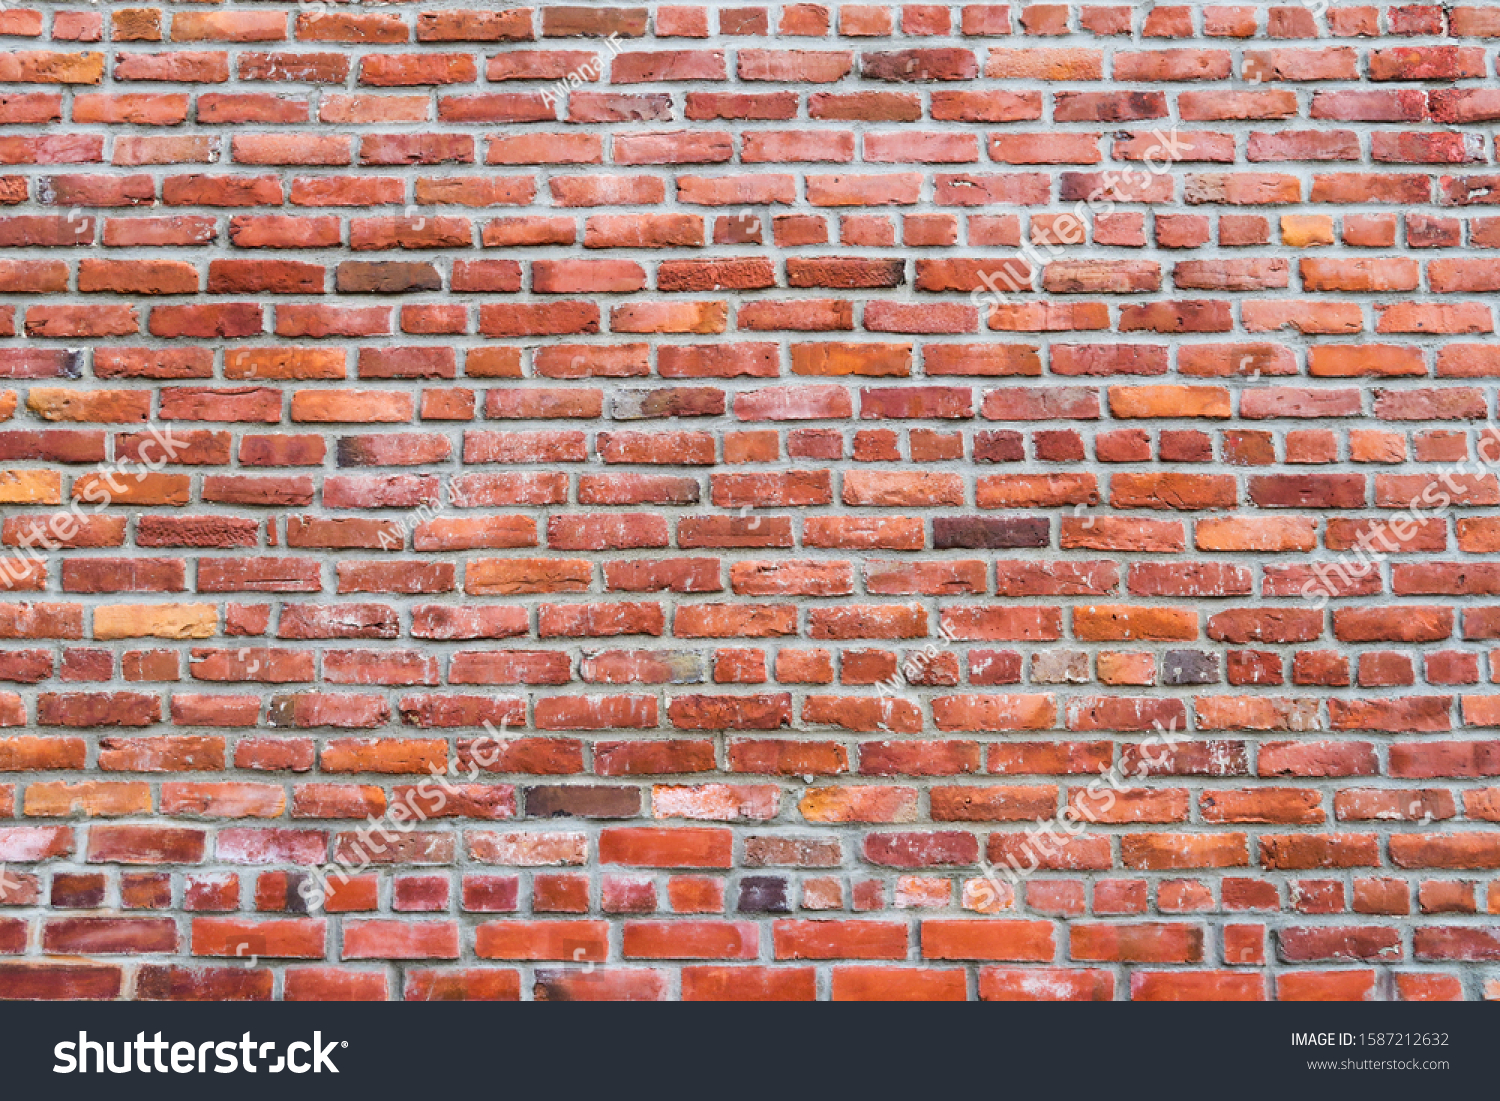 stock-photo-old-red-industrial-brick-wal